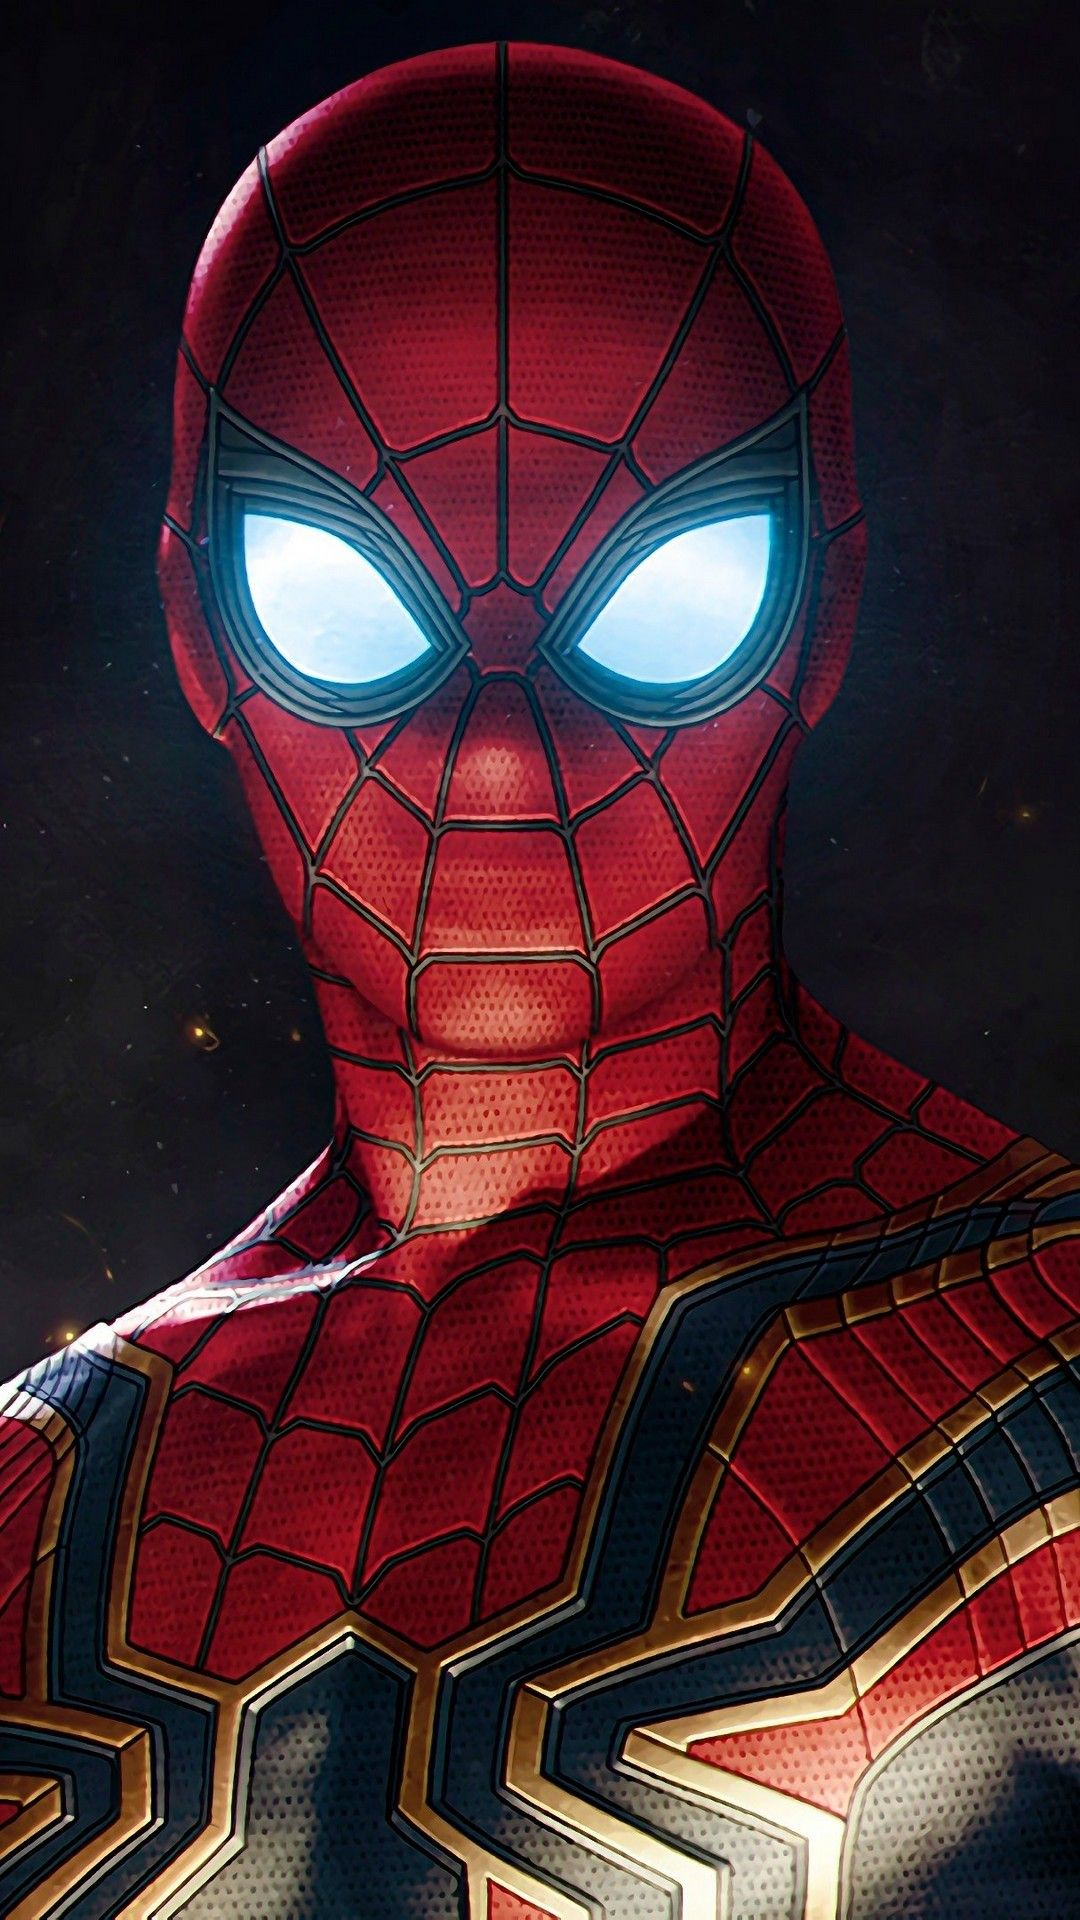 Spiderman Avengers Infinity War Iphone Wallpaper Superheroes Stuff